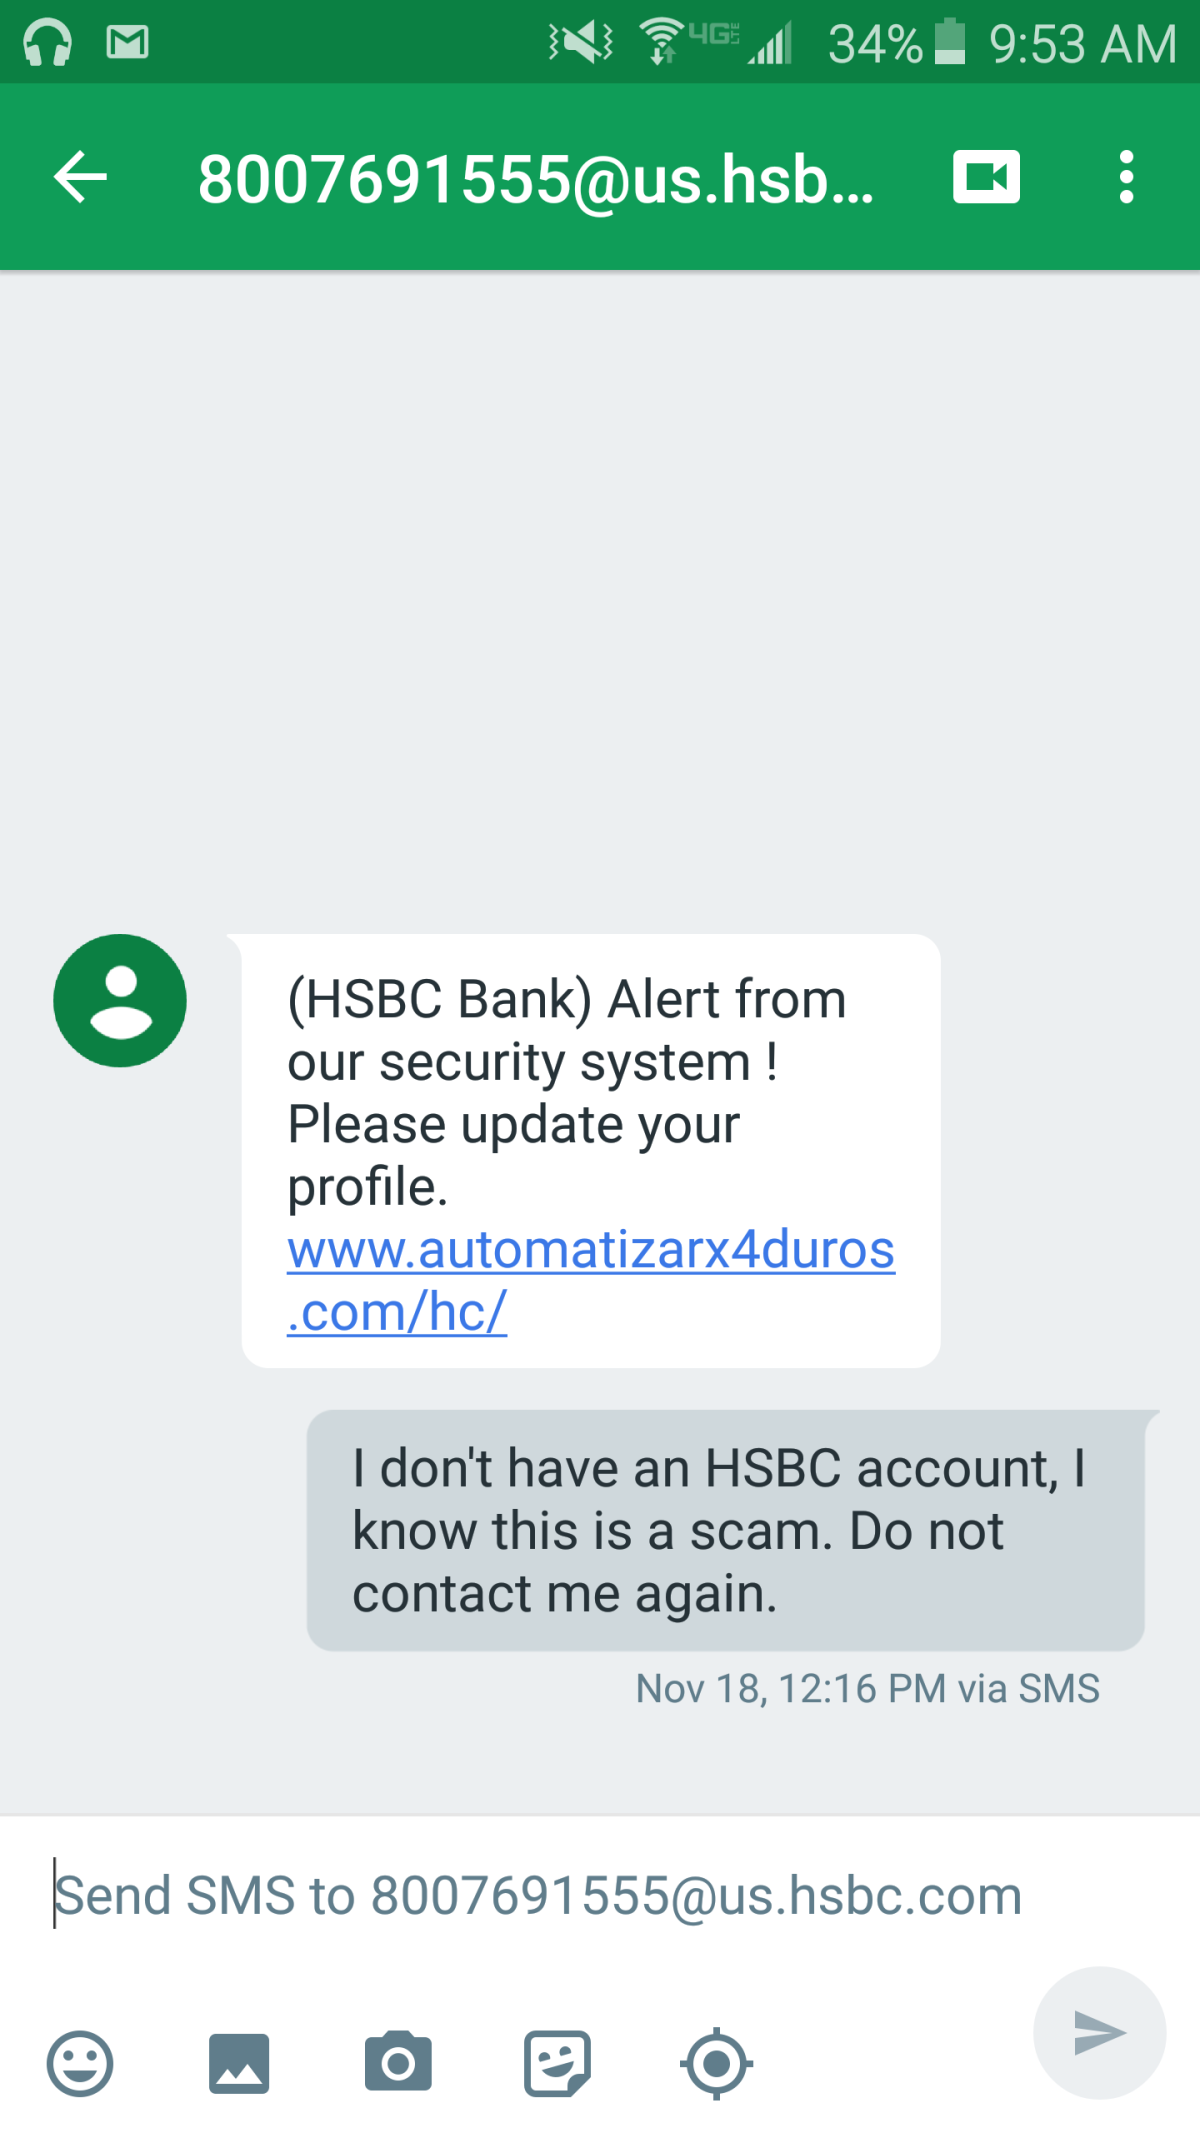 Phishing Texts Target HSBC Bank Customers | Tom's Guide